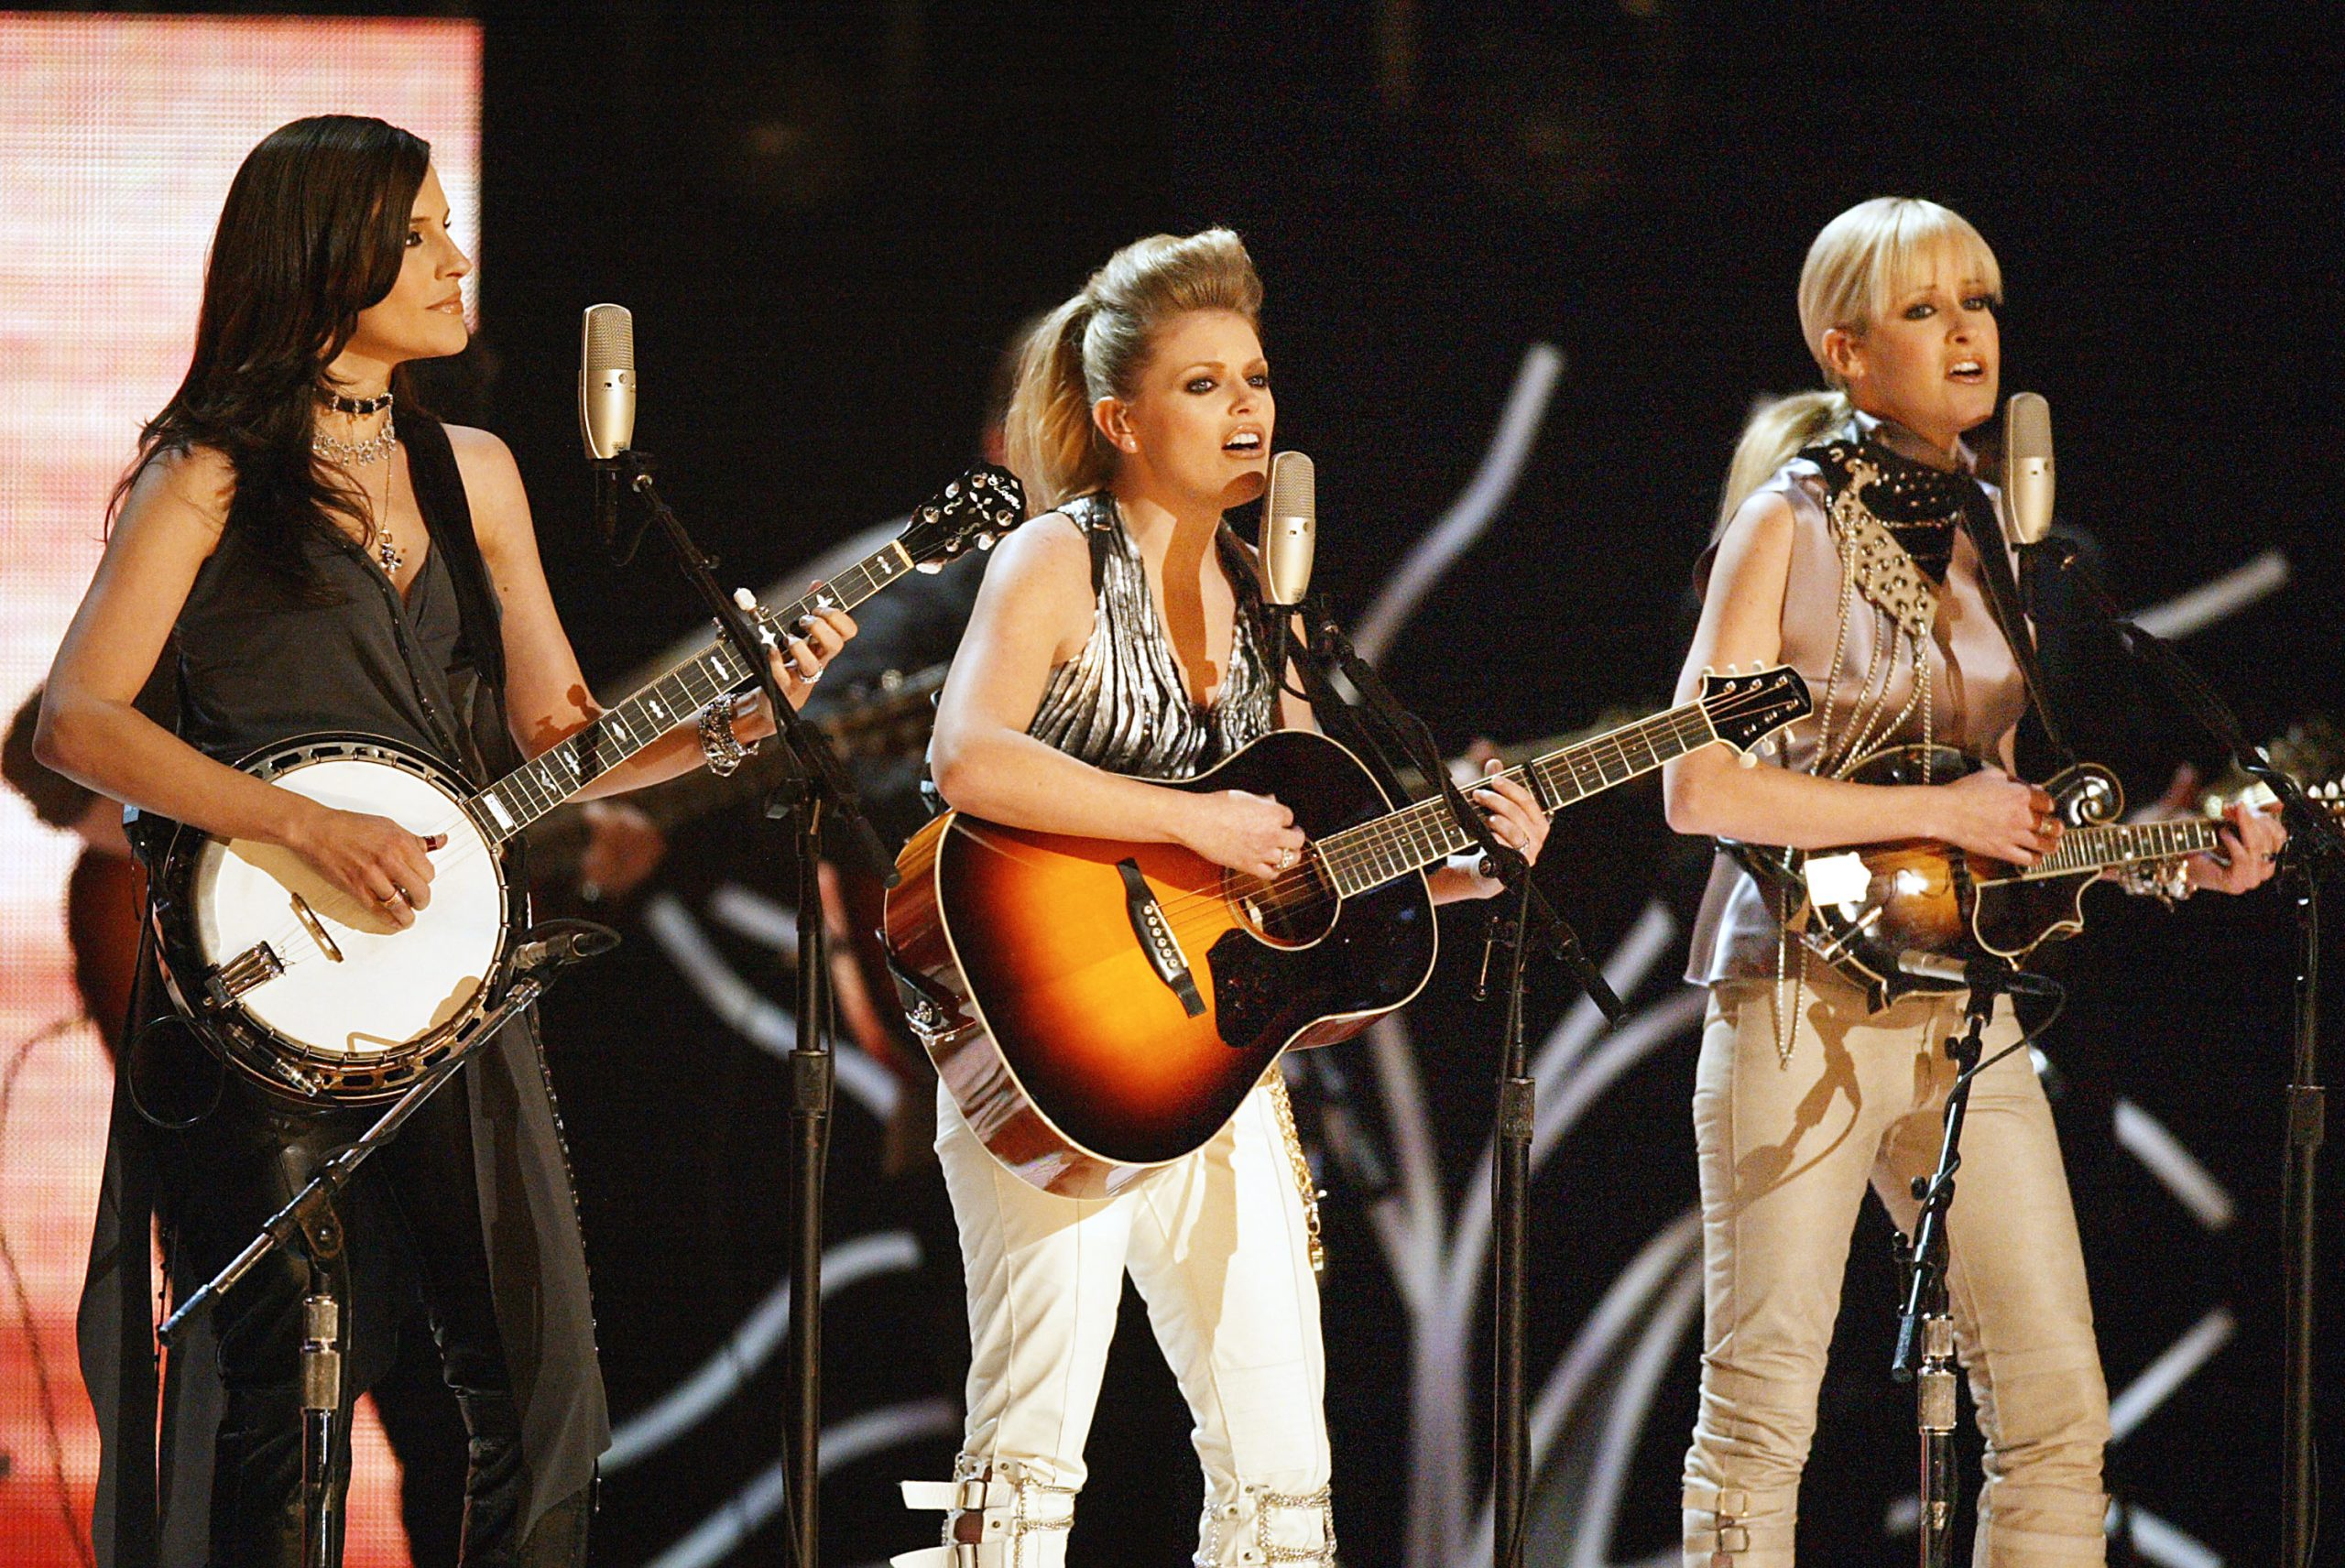 The Dixie Chicks change their name to The Chicks with racist overtones